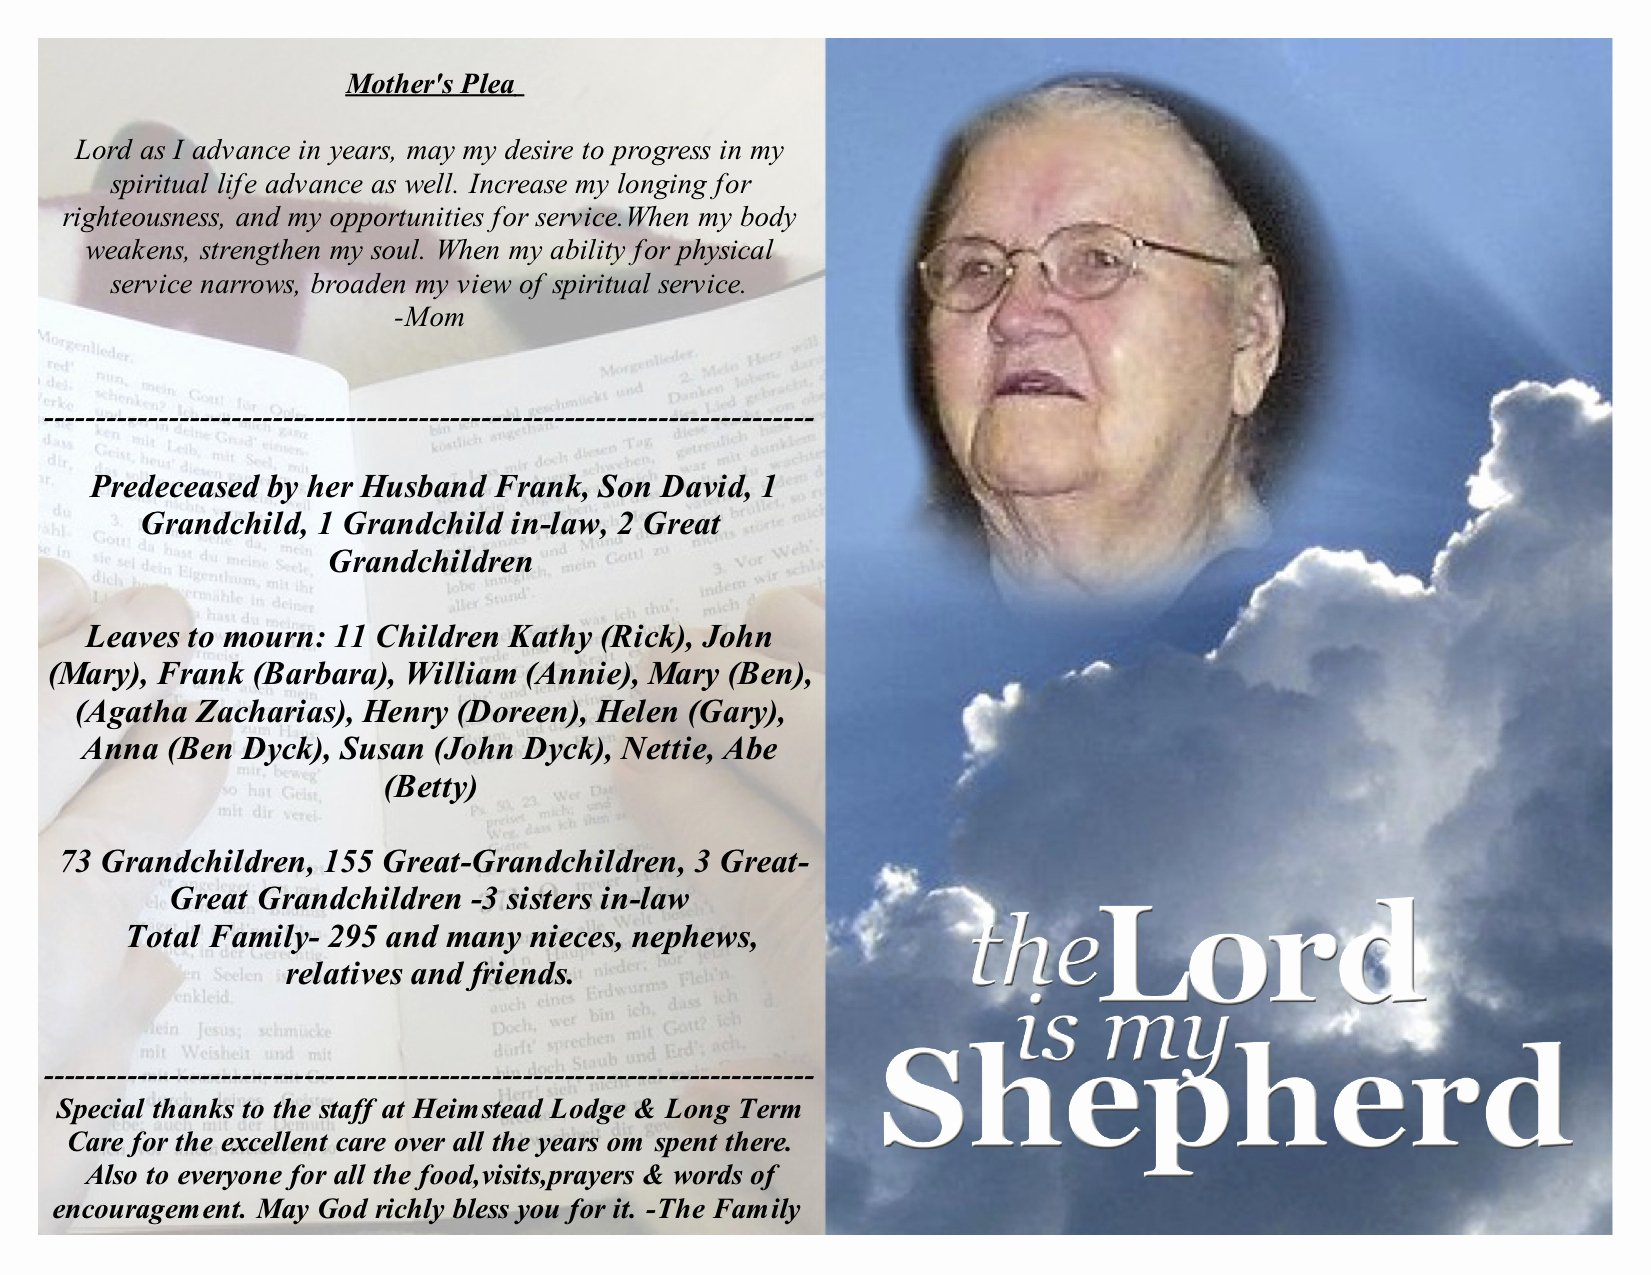 Obituary Template Google Docs Beautiful Fill In the Blank Obituary Template